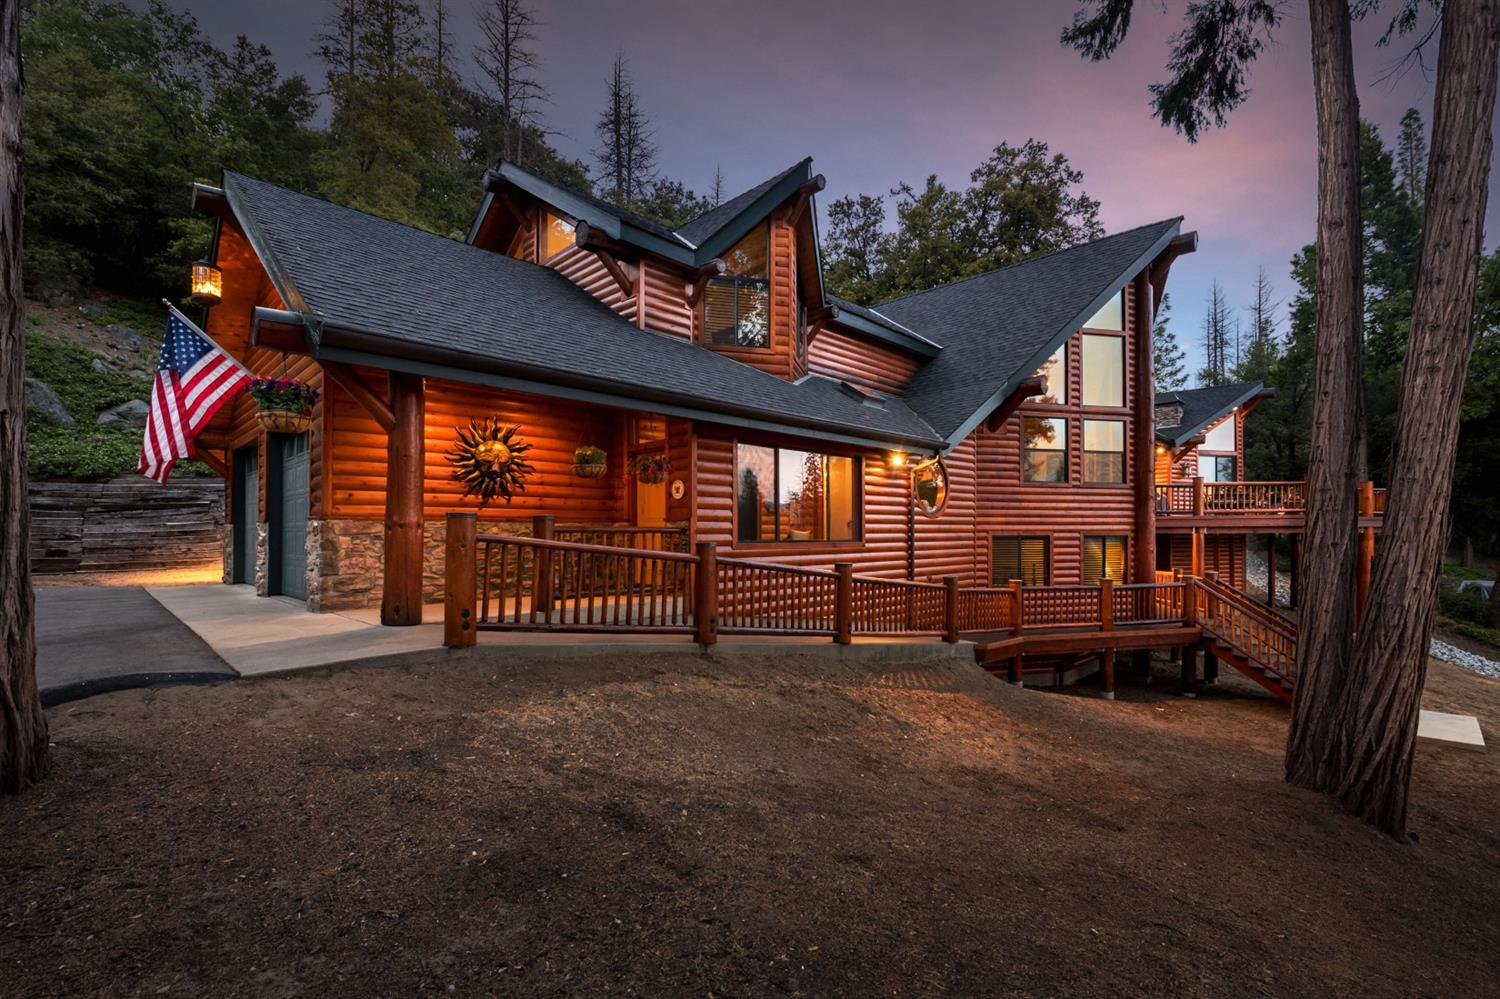 This beautiful home combines mountain cabin design and modern luxury with distant mountain views on 10 quiet, private acres near Shaver Lake. The spacious great room with 22' cedar ceilings & log siding has room for large gatherings. The kitchen is new with knotty alder cabinetry; Italian granite; SS 48 commercial range, microwave drawer, refrigerator & dishwasher. The private, spacious master suite with propane stove, natural stone hearth, log ceiling treatments and luxurious bathroom are on the main level. A second master suite is upstairs, & 2 large bedrooms and full baths are downstairs & half bath off the laundry room which has new cabinetry & granite. The loft is a great office or kids play room. The den is the TV room with a pressed metal & captains beam ceiling & propane stove with natural stone hearth. The deck with fire pit is large. The hidden 750-bottle wine cellar is gorgeous. Garage fits large pickups. The shop has a 3/4 bath, 220 & heater. 20+ GPM well. Watch the video!